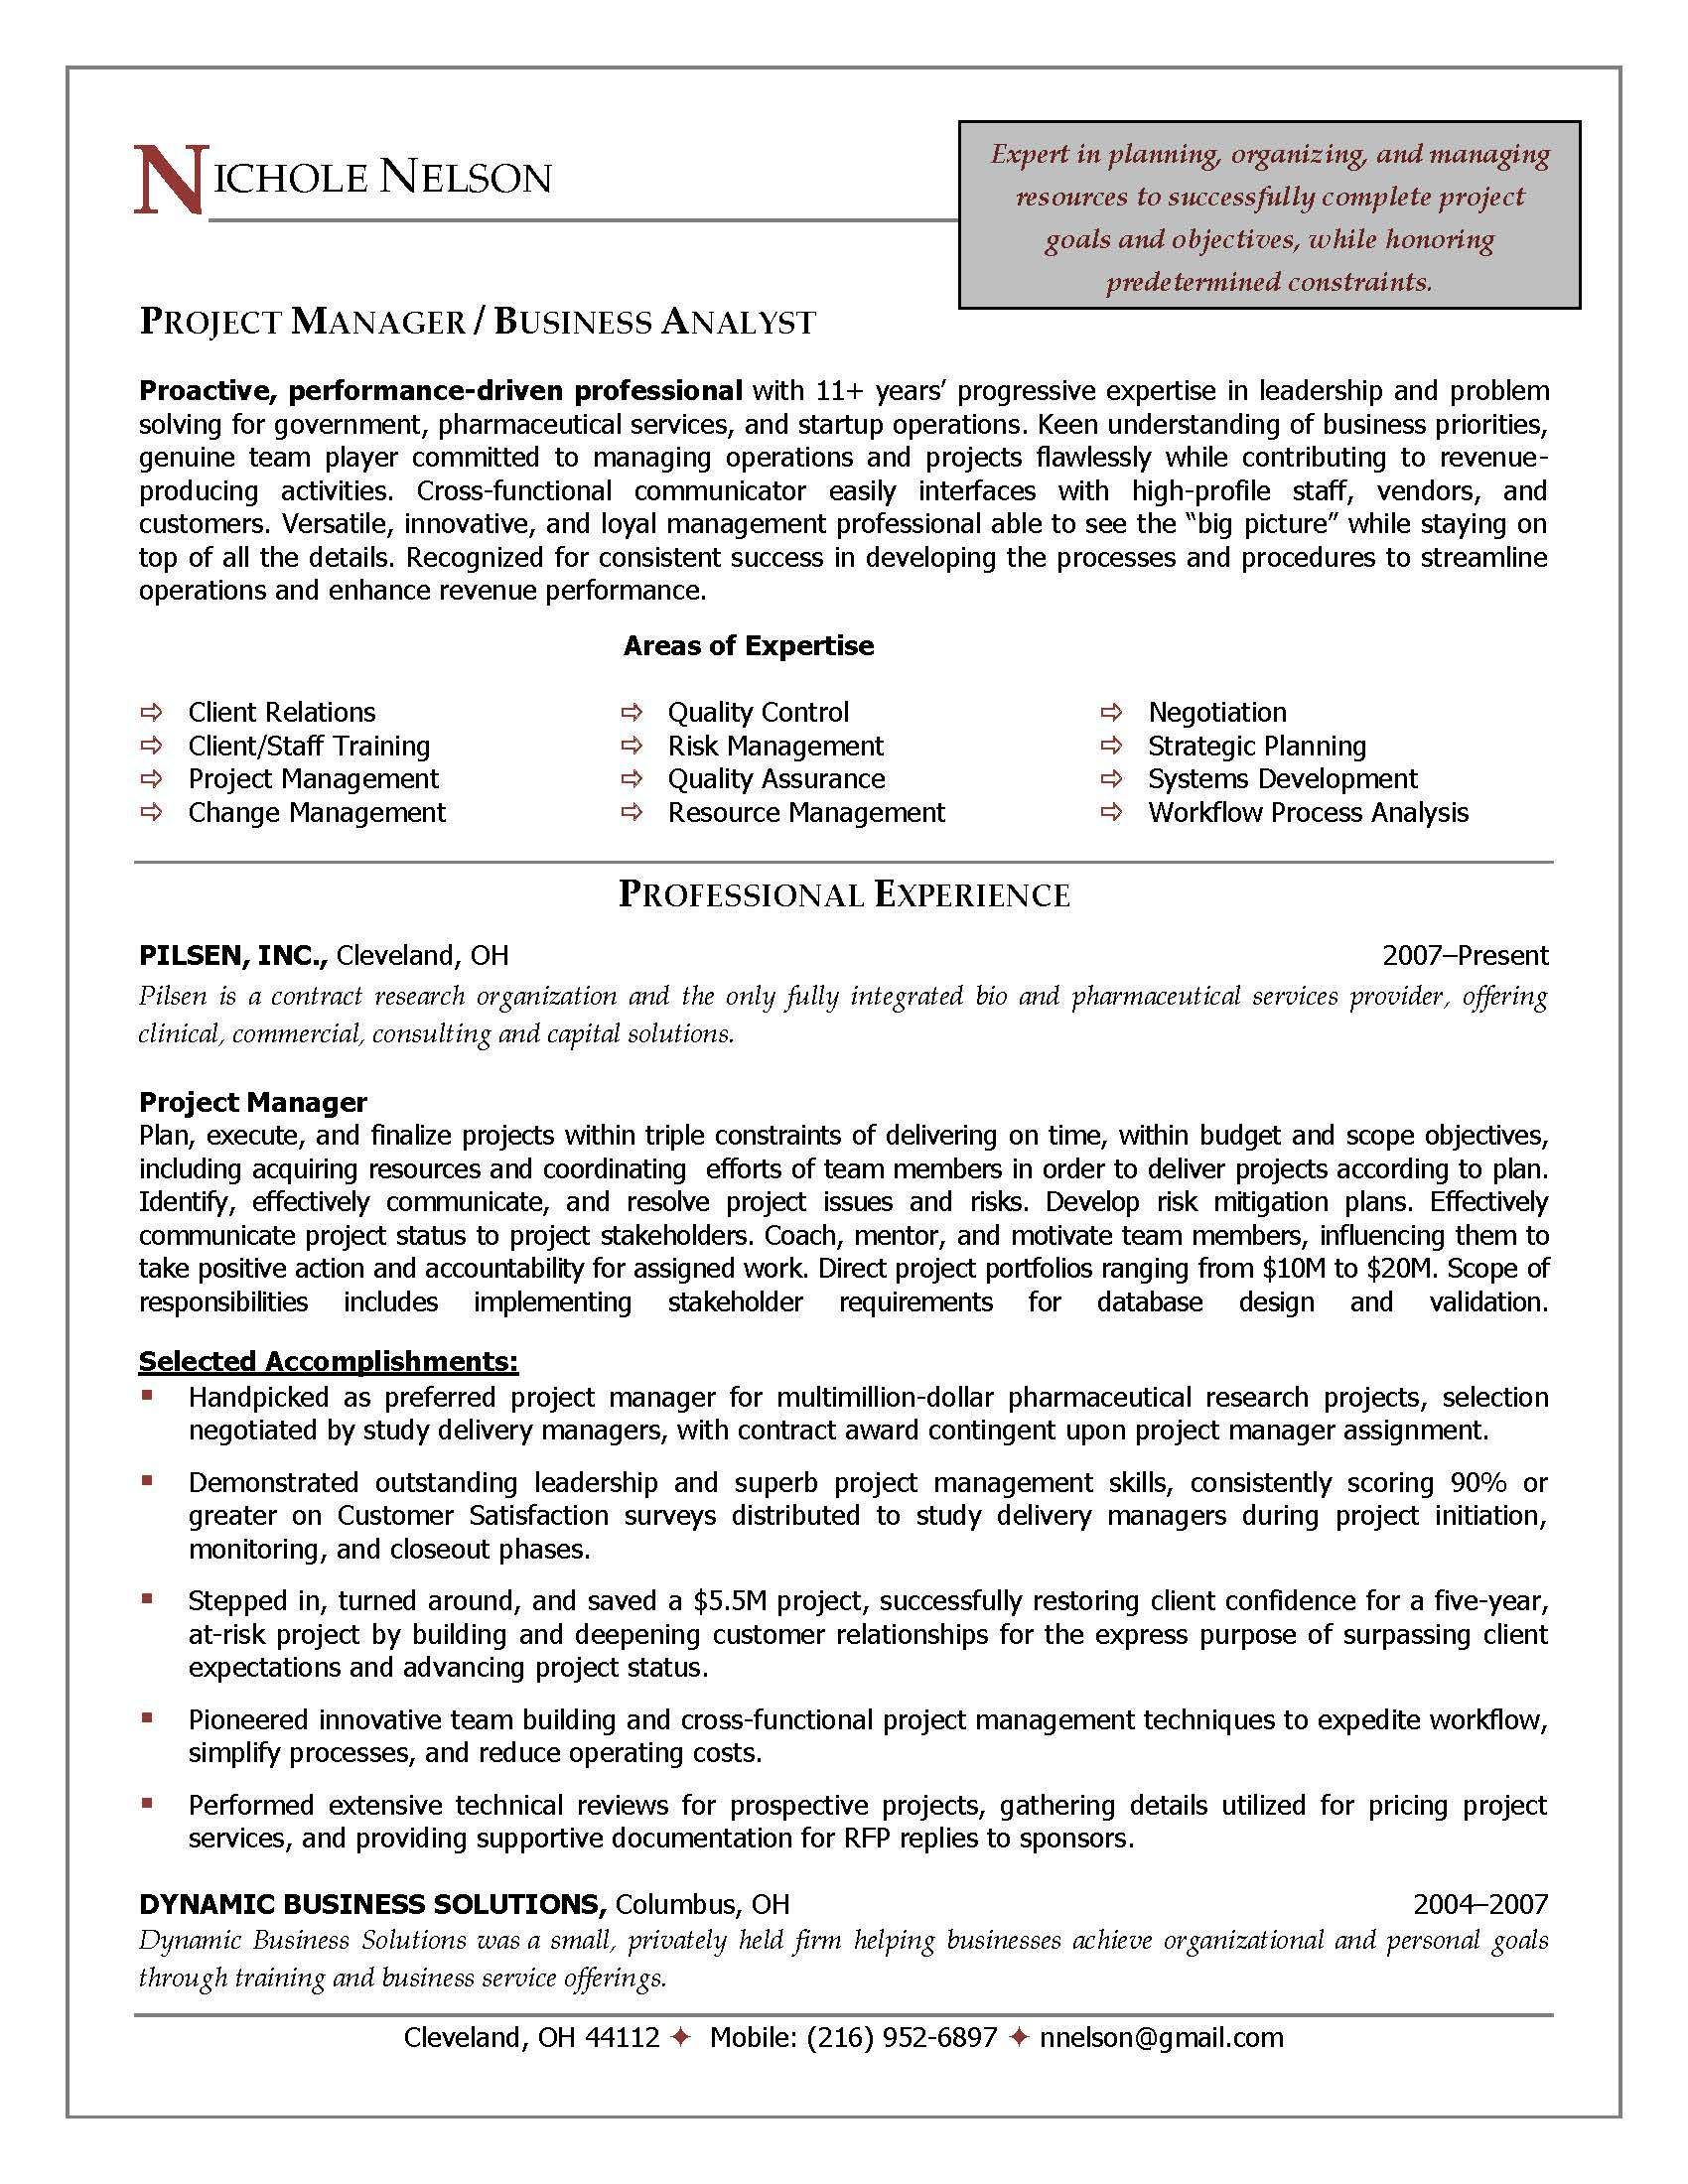 Project Management Resume Project Manager Resume Sample Provided Elite Writing Program Free